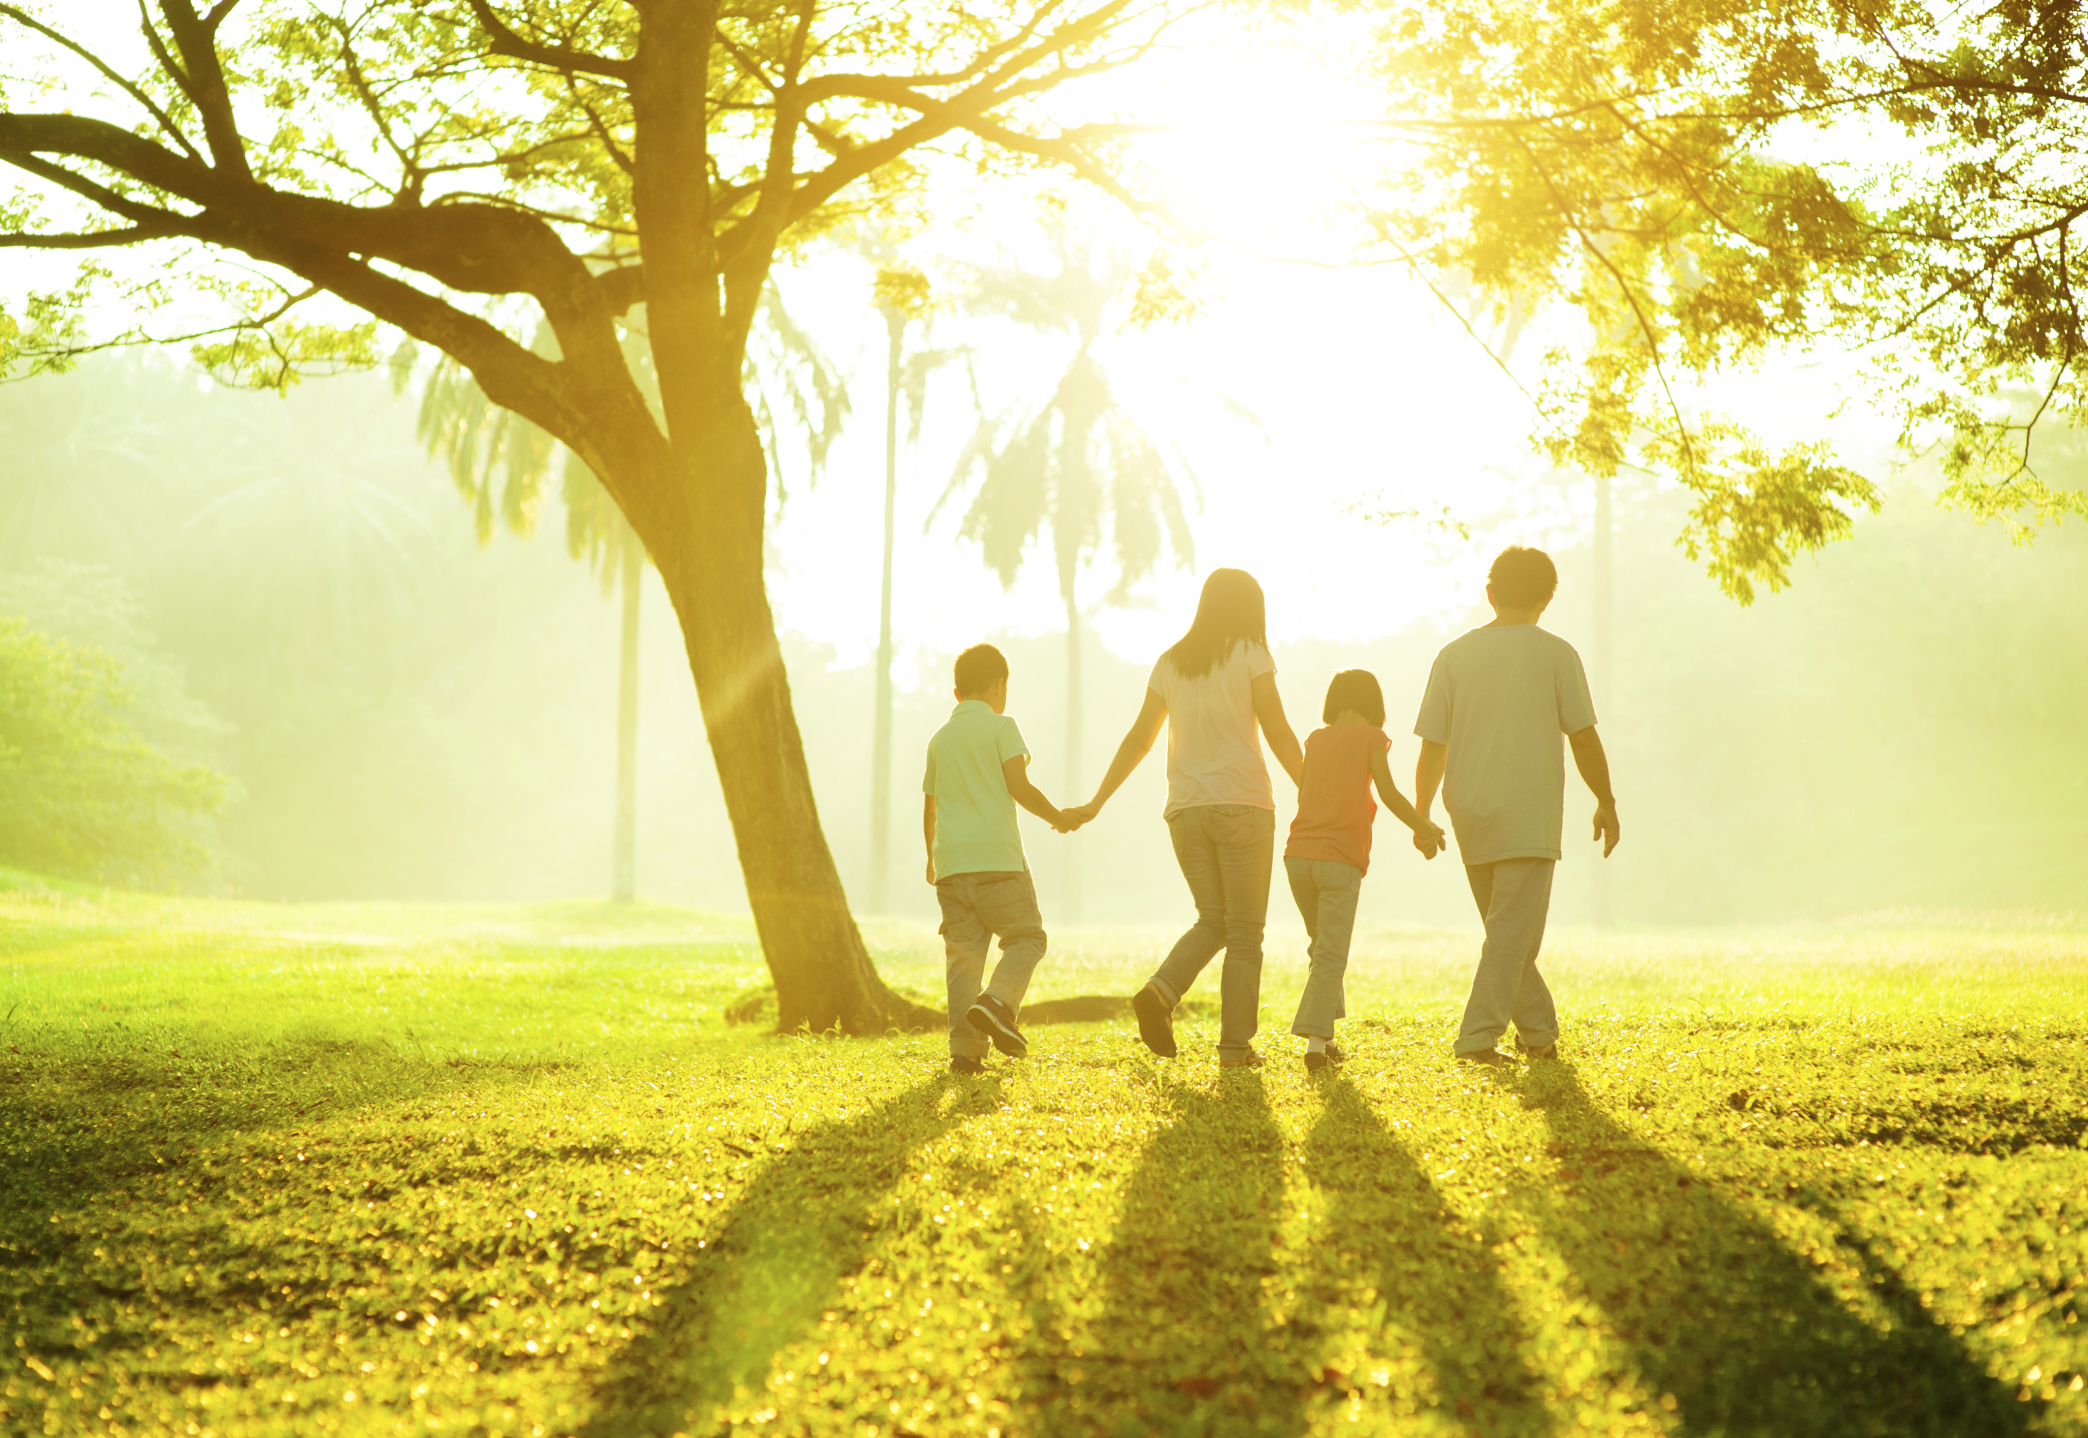 TEST: Interacting with your family | Psychologies